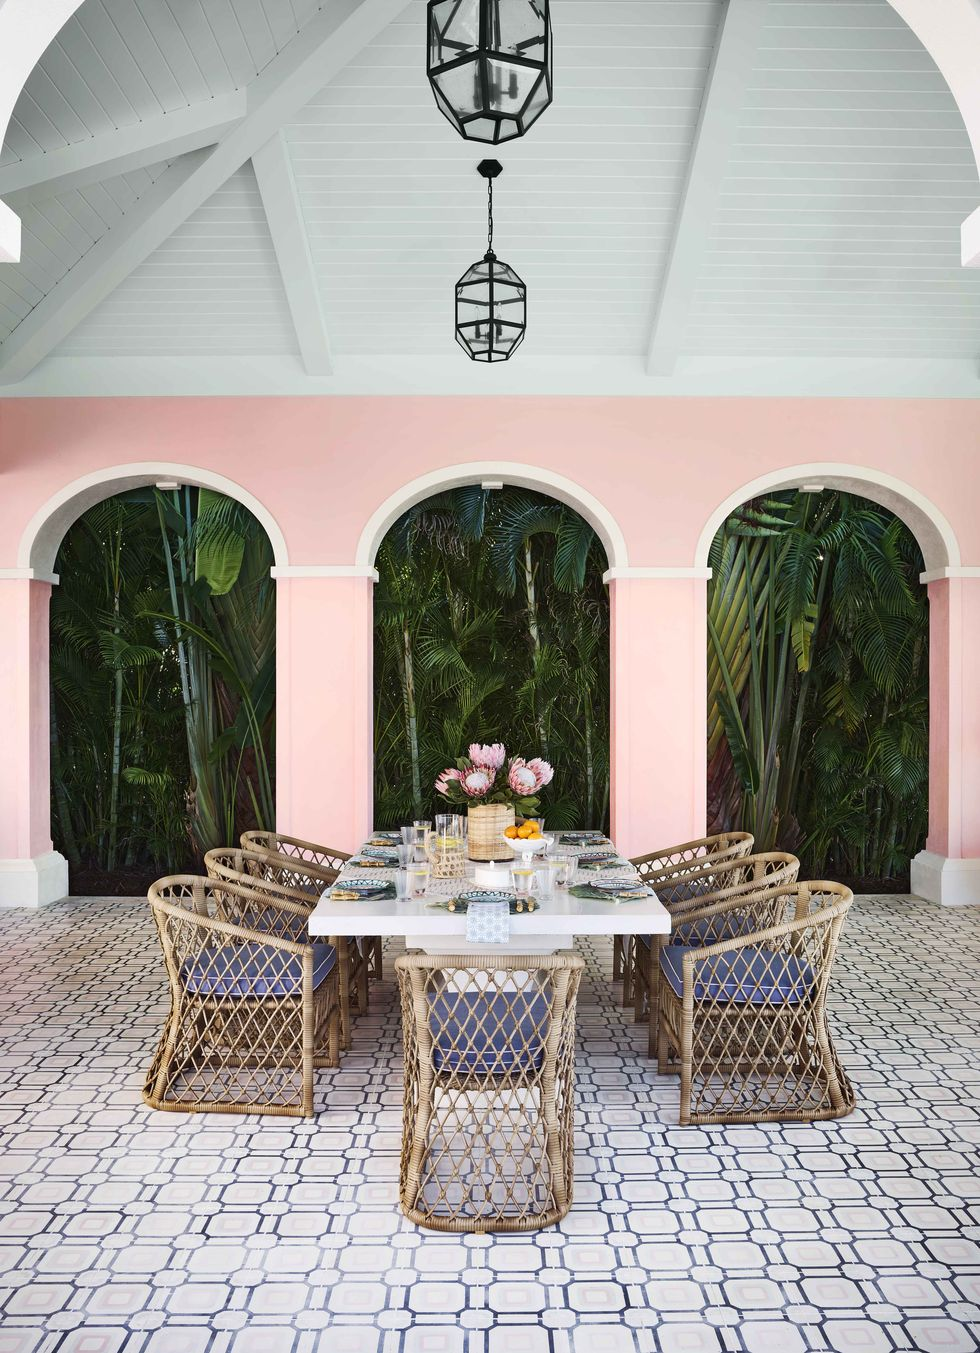 celerie-kemble-naples-florida-outdoor-dining-room-1587410516